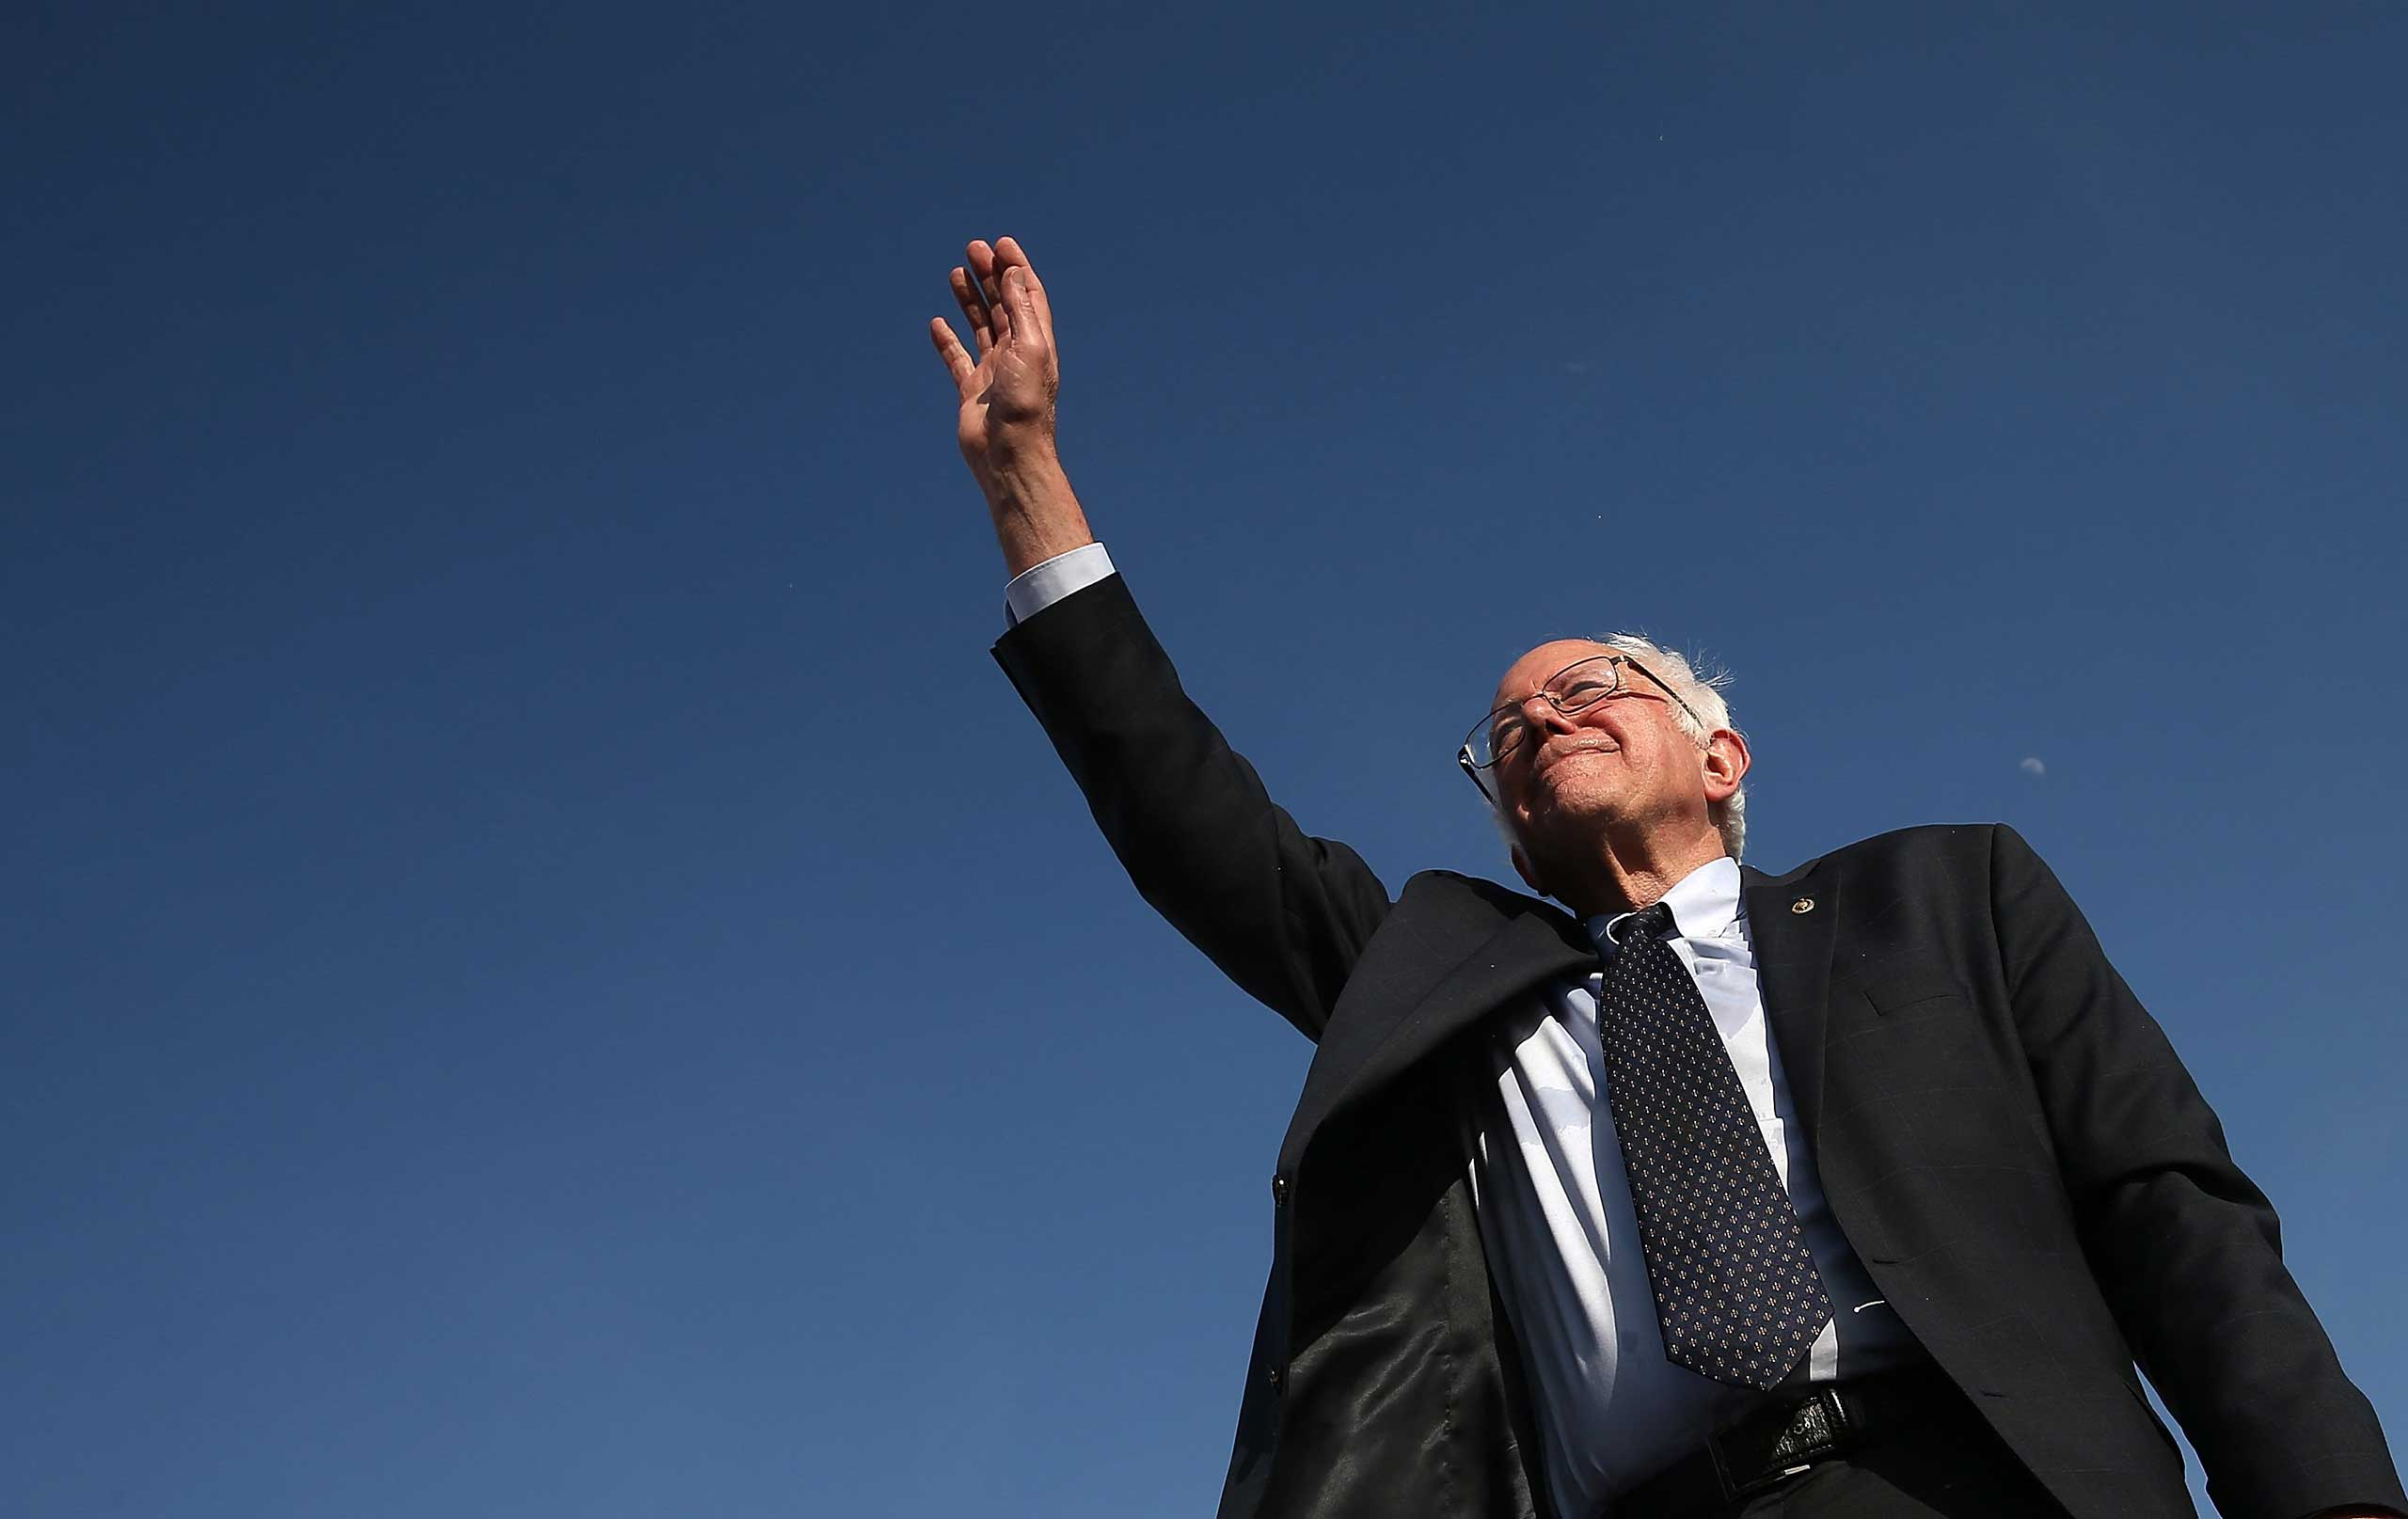 <b>Bernie Sanders</b> waves to supporters after officially announcing his candidacy for the U.S. presidency during an event at Waterfront Park in Burlington, Vermont, on May 26, 2015.